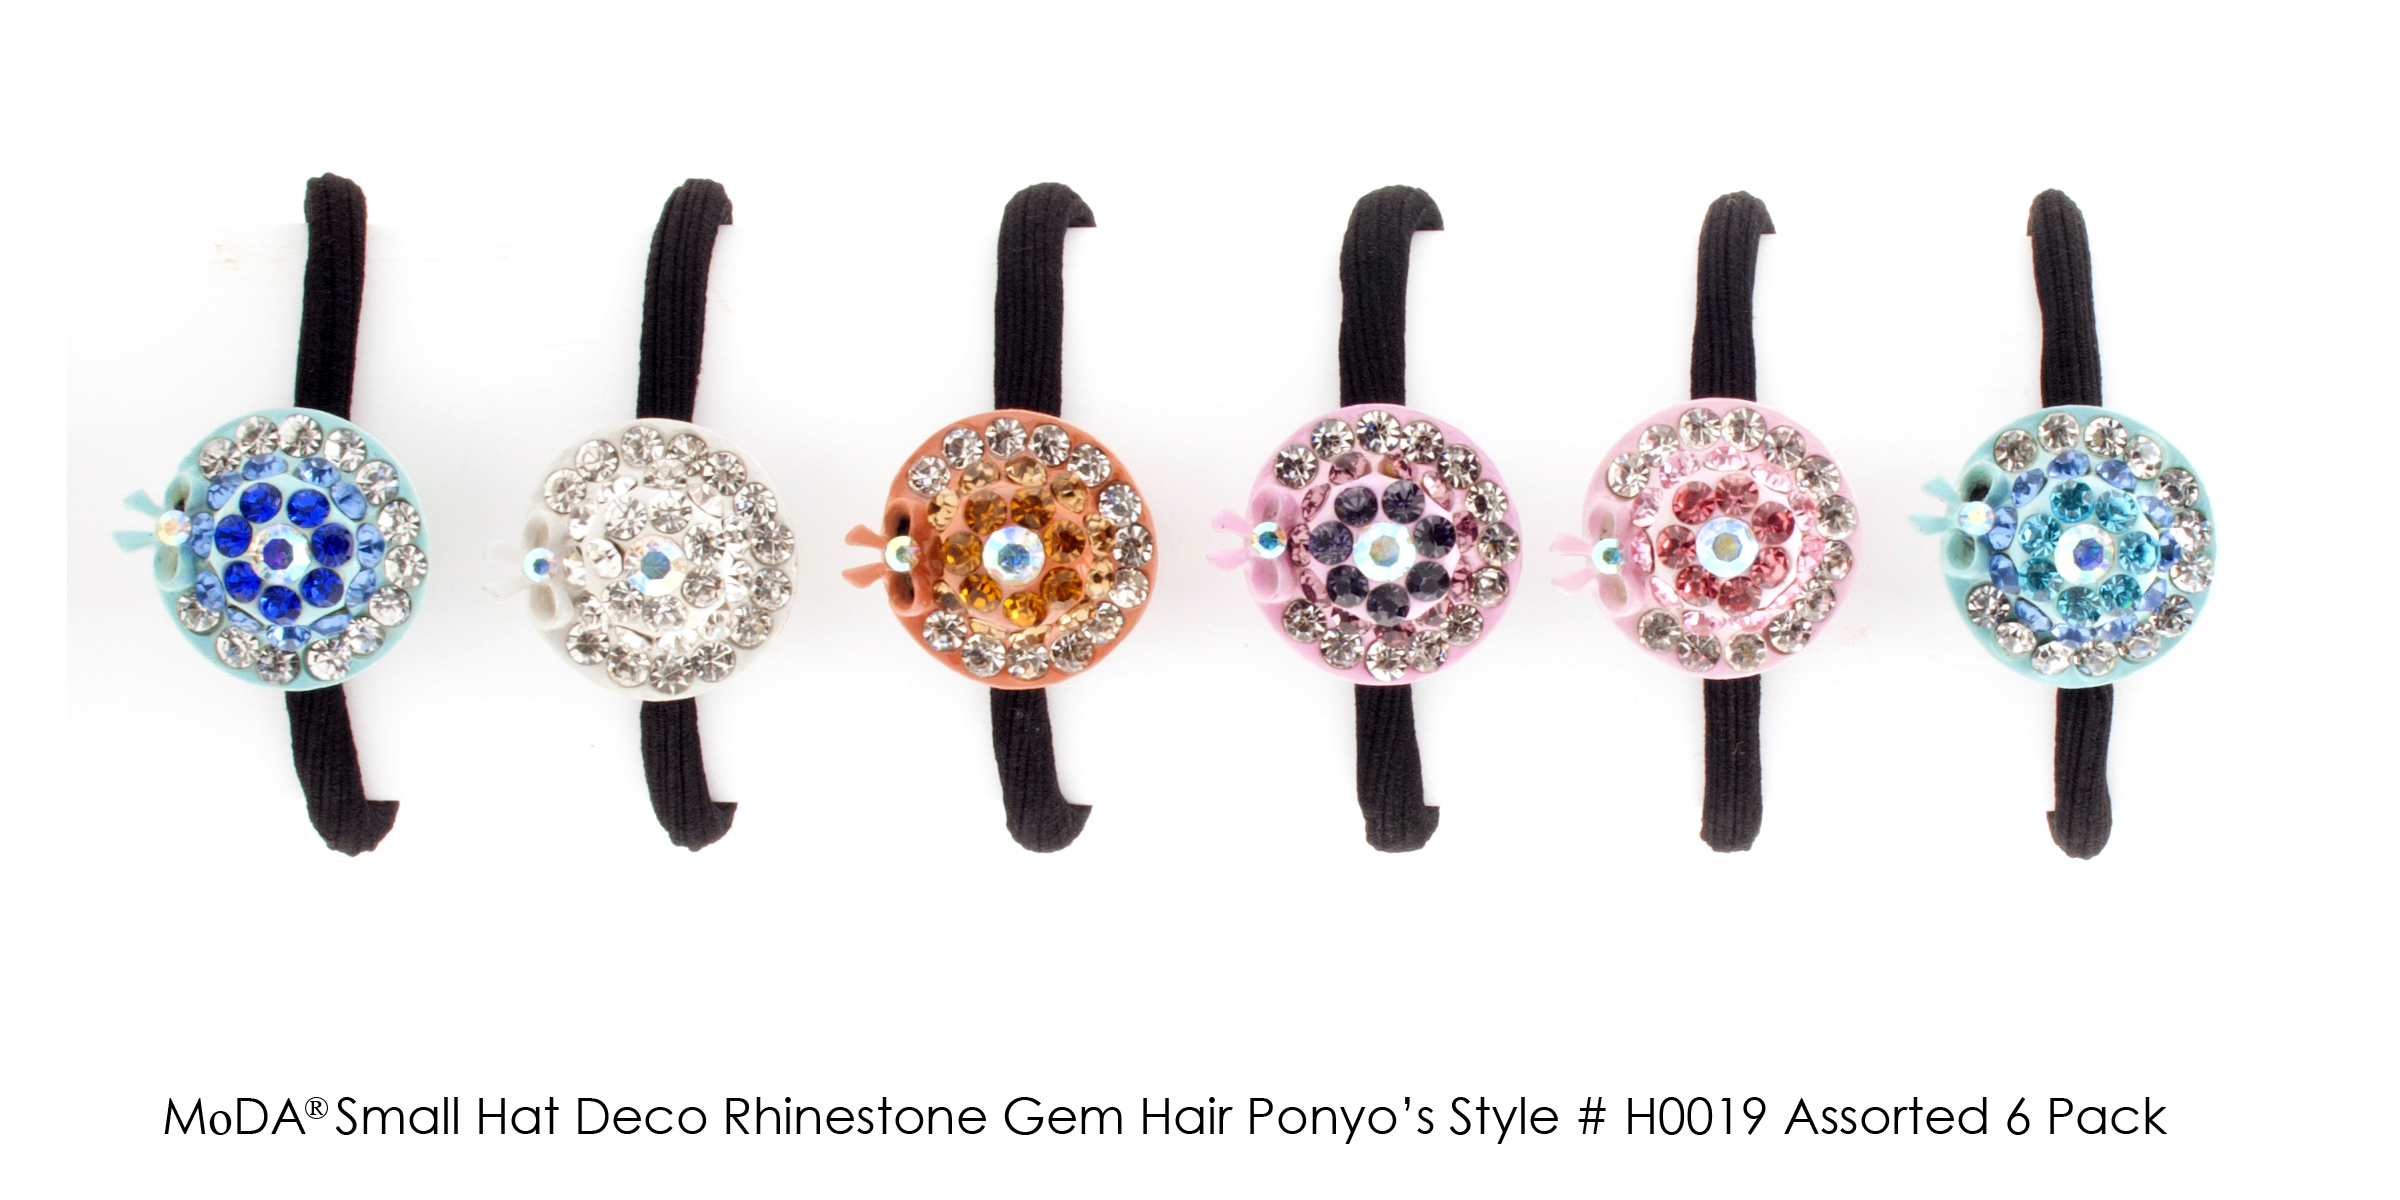 MoDA Hair Ponyo with Small Hat Deco Rhinestone Gem Set of 6 Assorted Colors